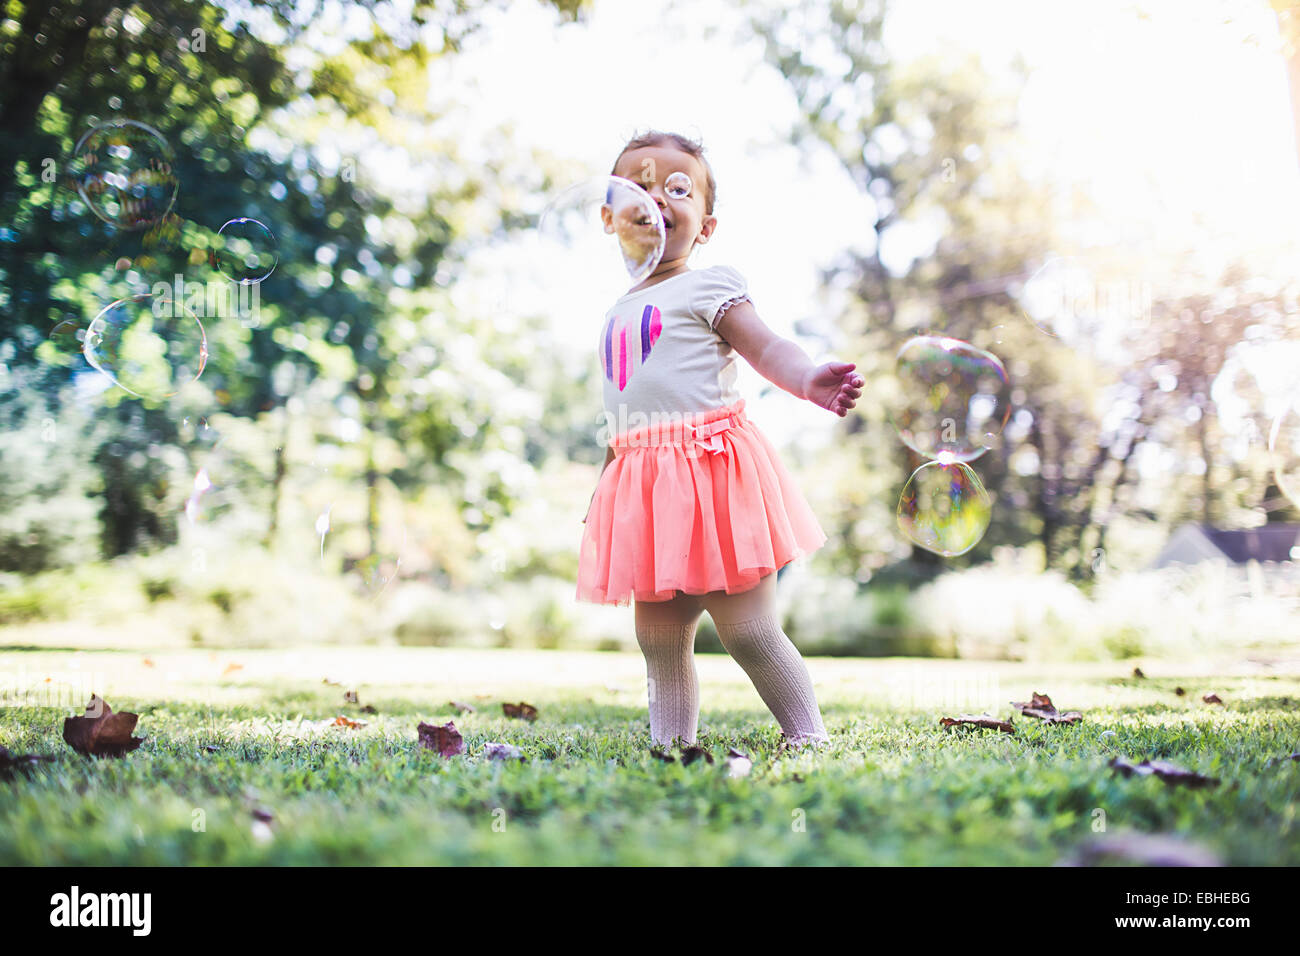 Baby Girl Playing with bubbles in garden Photo Stock